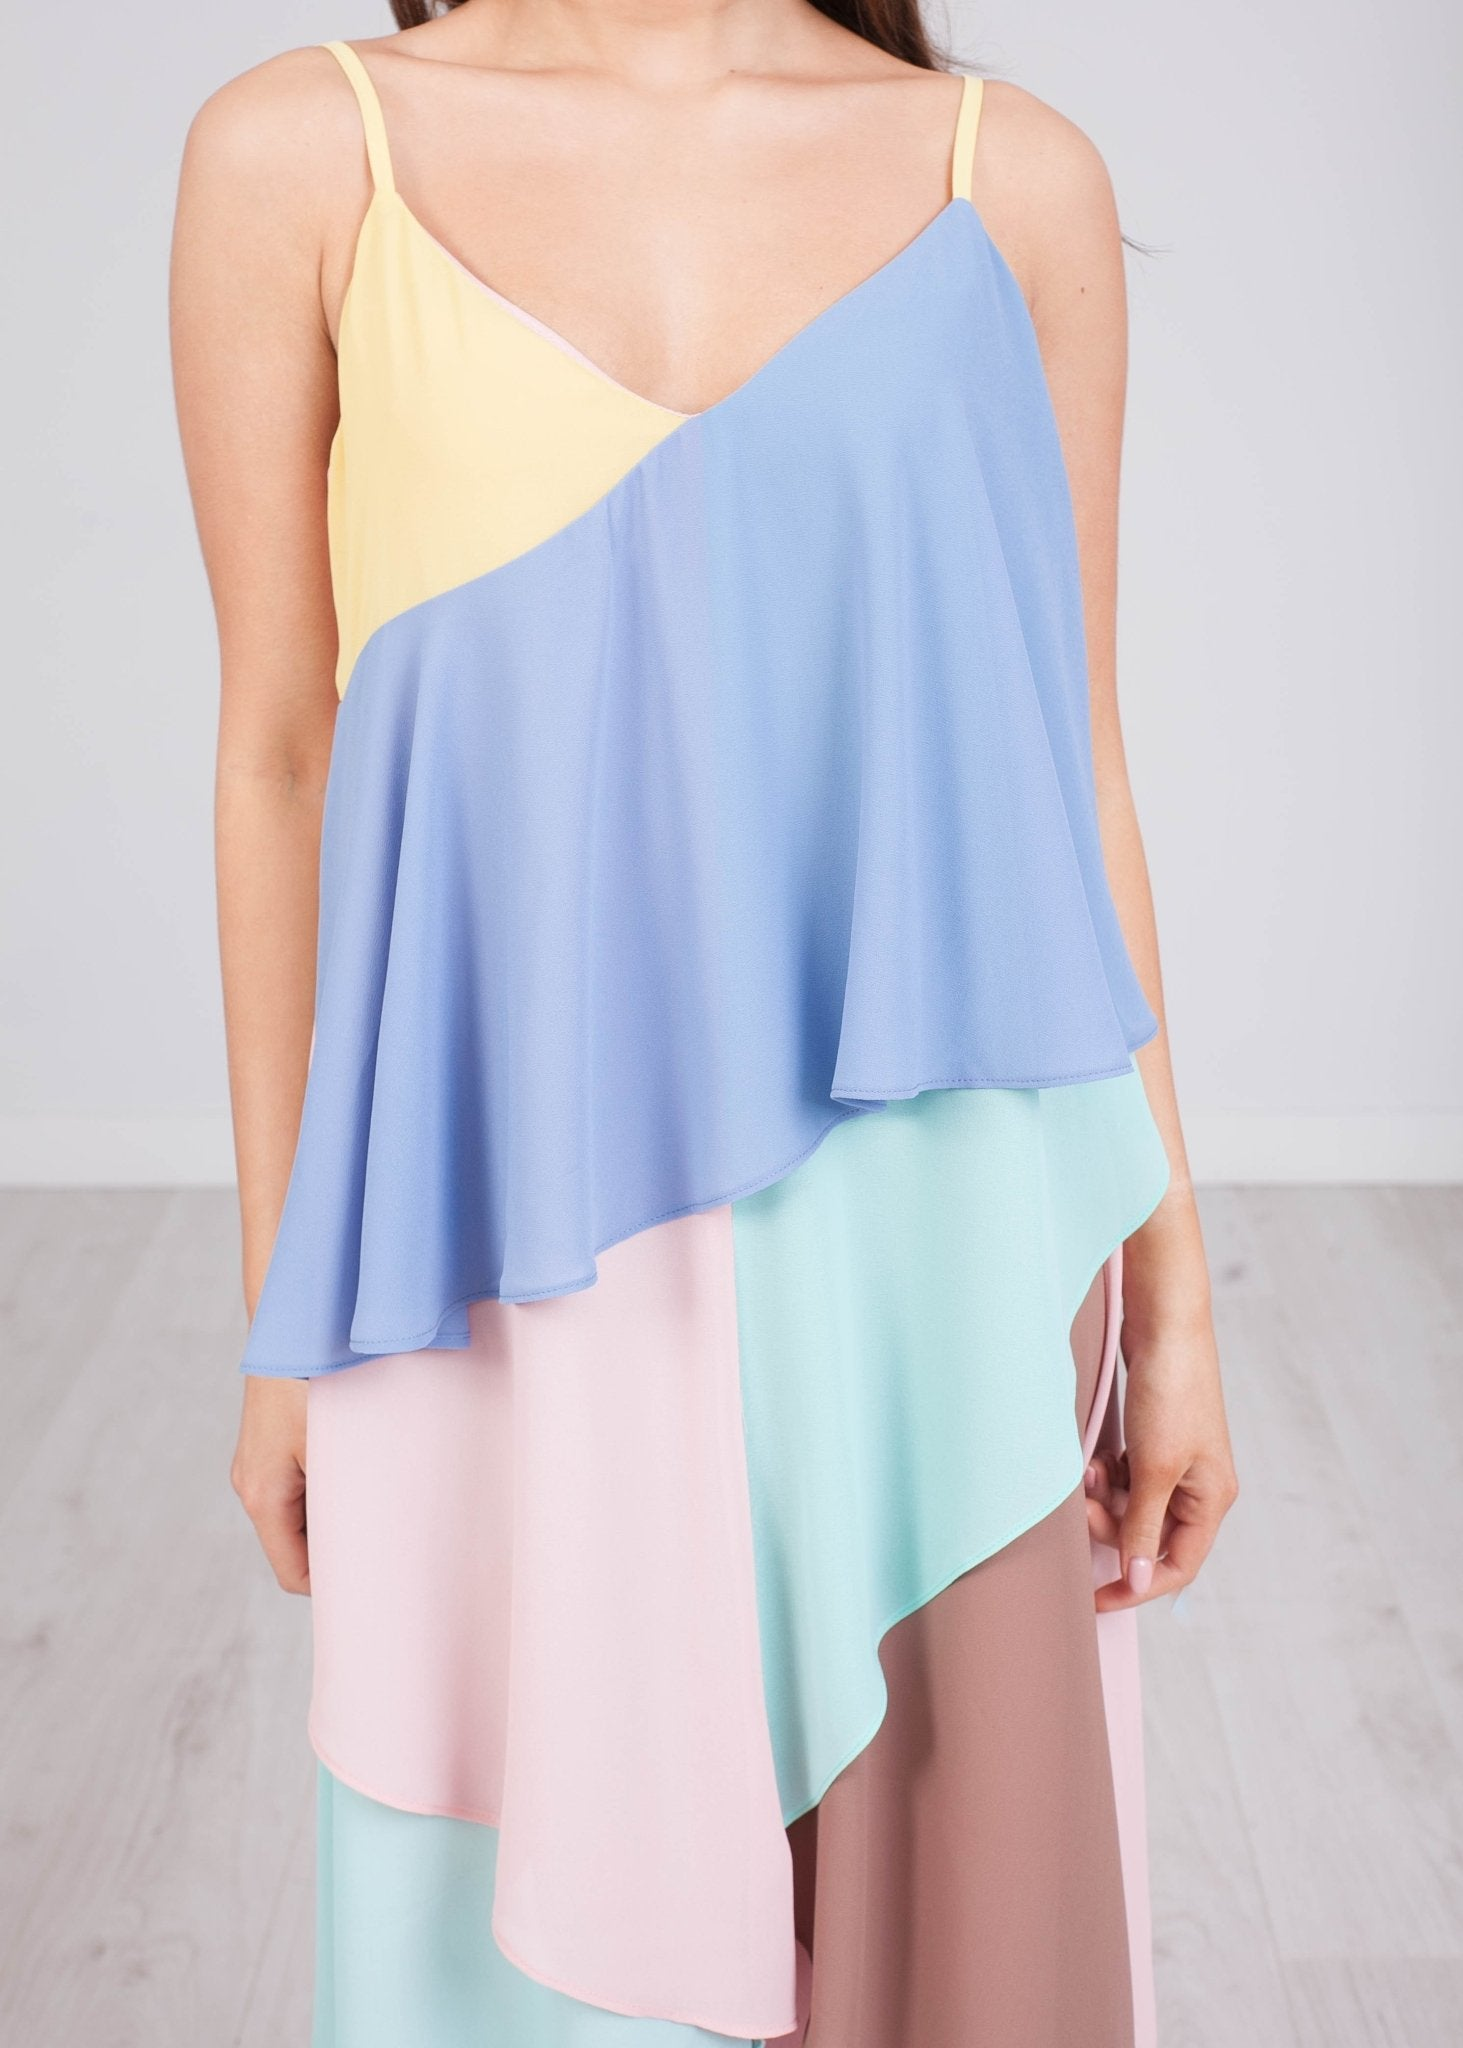 Jasmine Colour Block Cami Dress - The Walk in Wardrobe